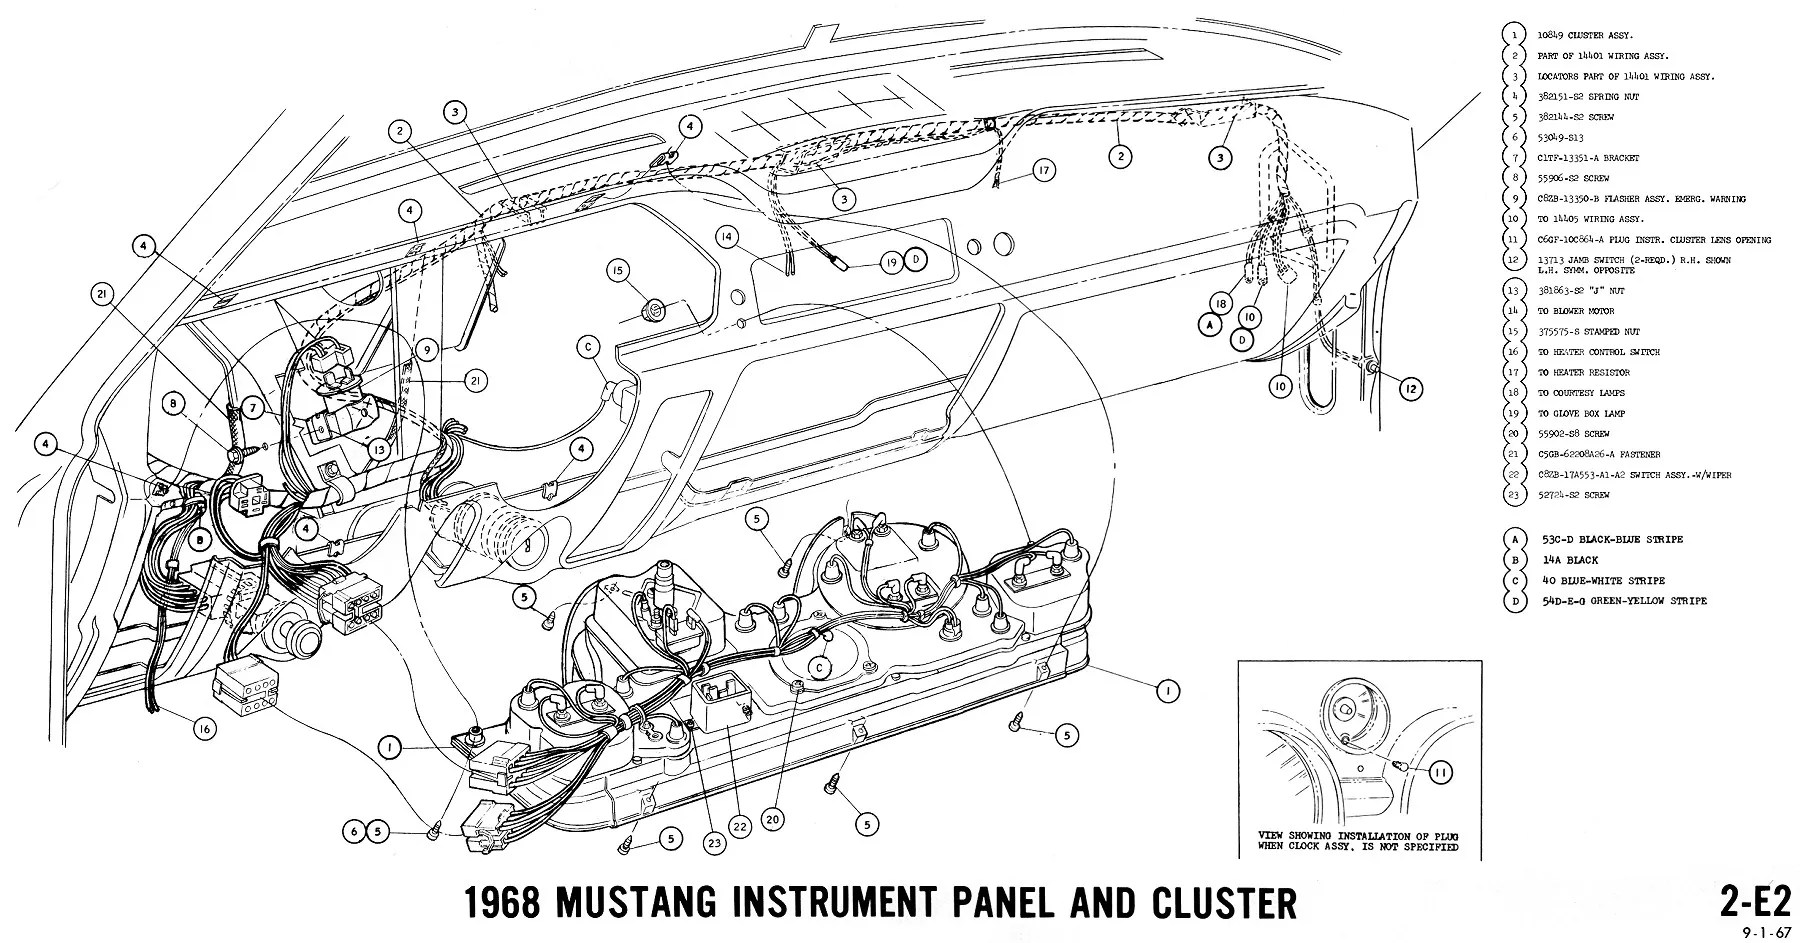 instrument cluster e2 instrument cluster 1968 ford mustang wiring guide how to use the wiring diagrams [ 1800 x 943 Pixel ]